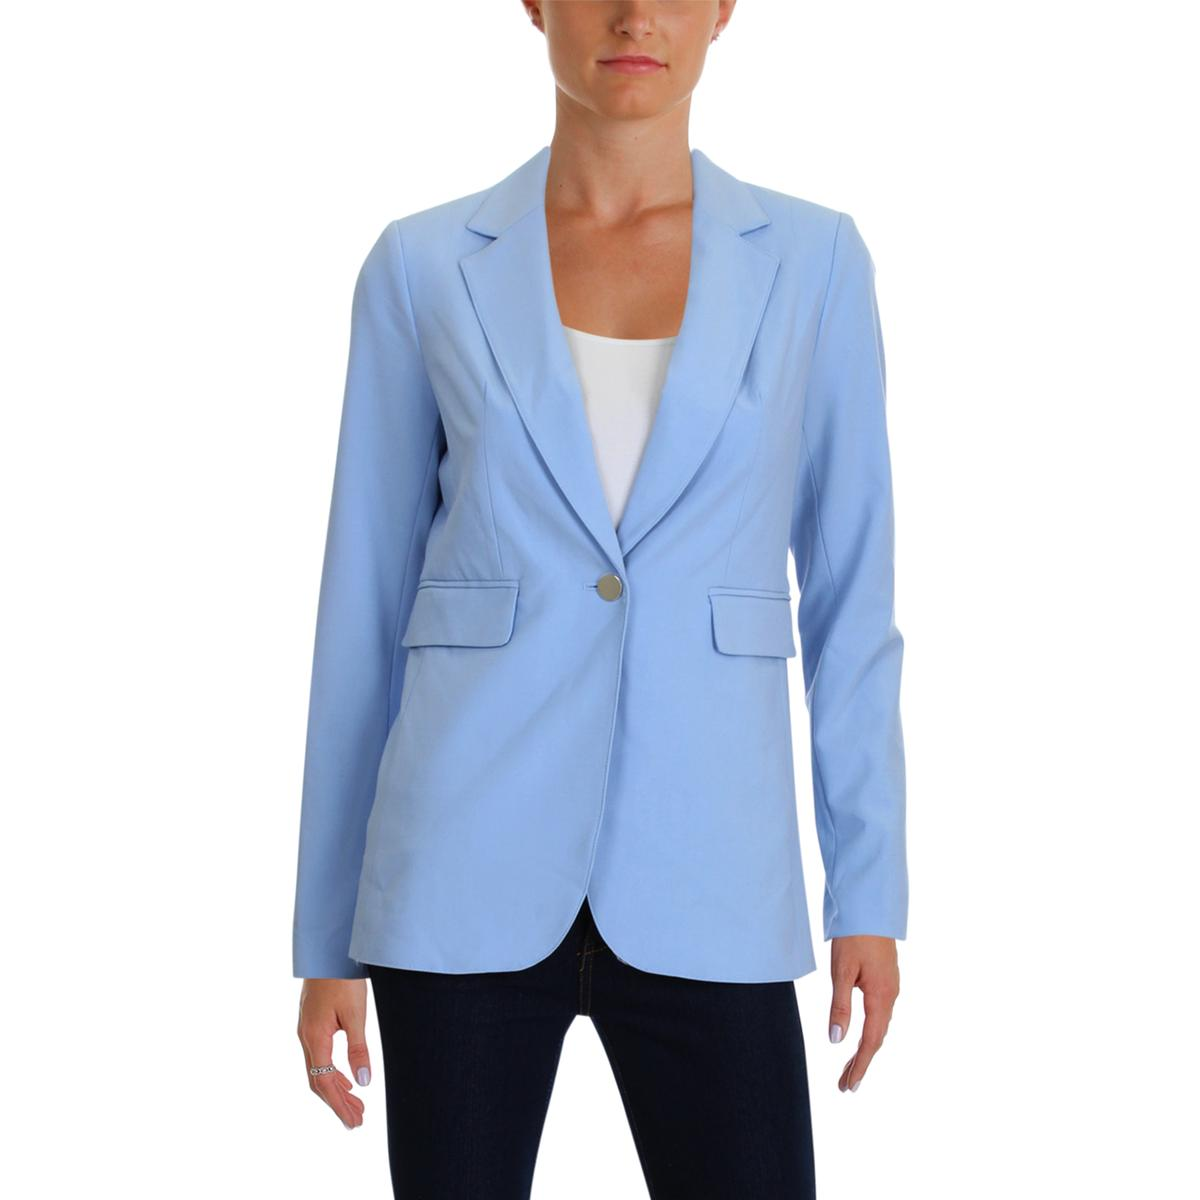 56ef1010 Details about Calvin Klein Womens Blue Office One-Button Blazer Jacket  Petites 2P BHFO 1388